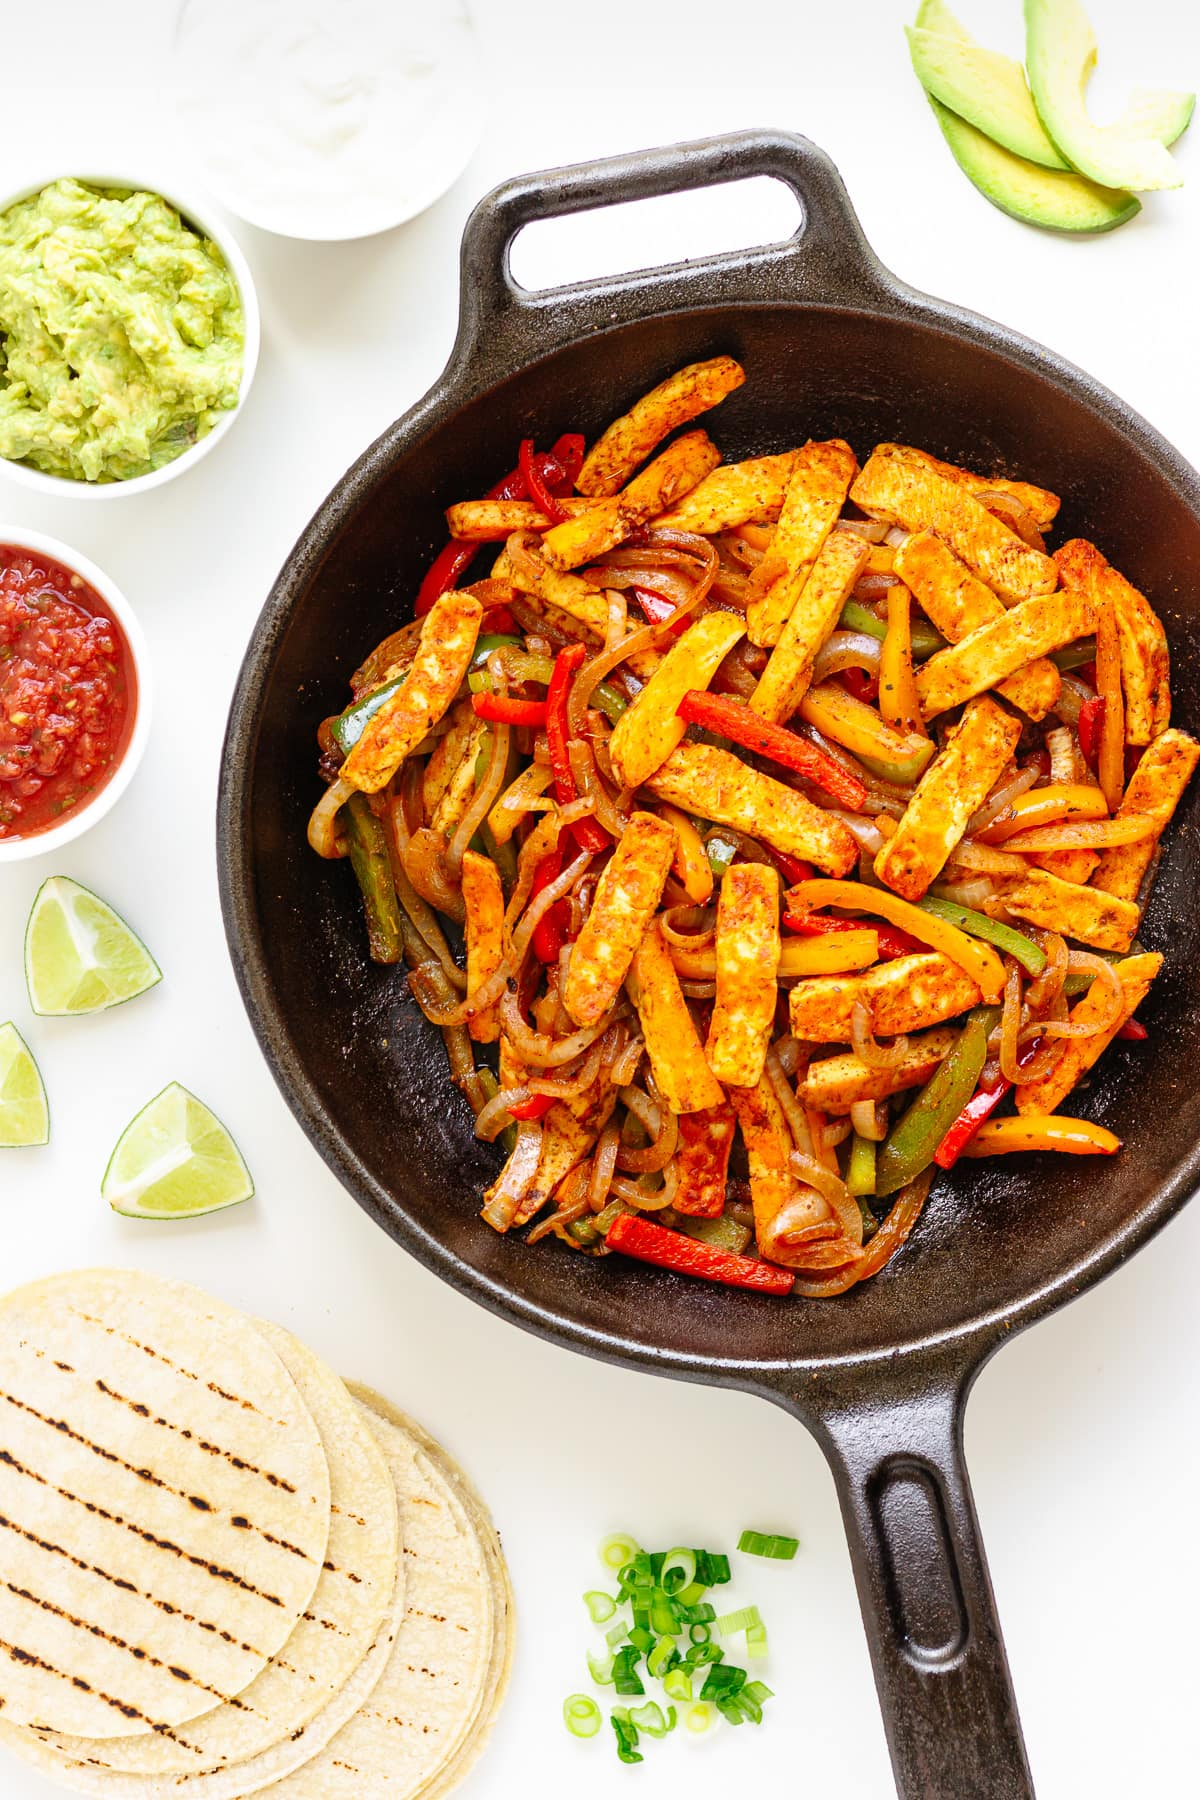 Flat lay of halloumi vegetable fajita mixture in a cast iron skillet surrounded by tortillas and toppings.